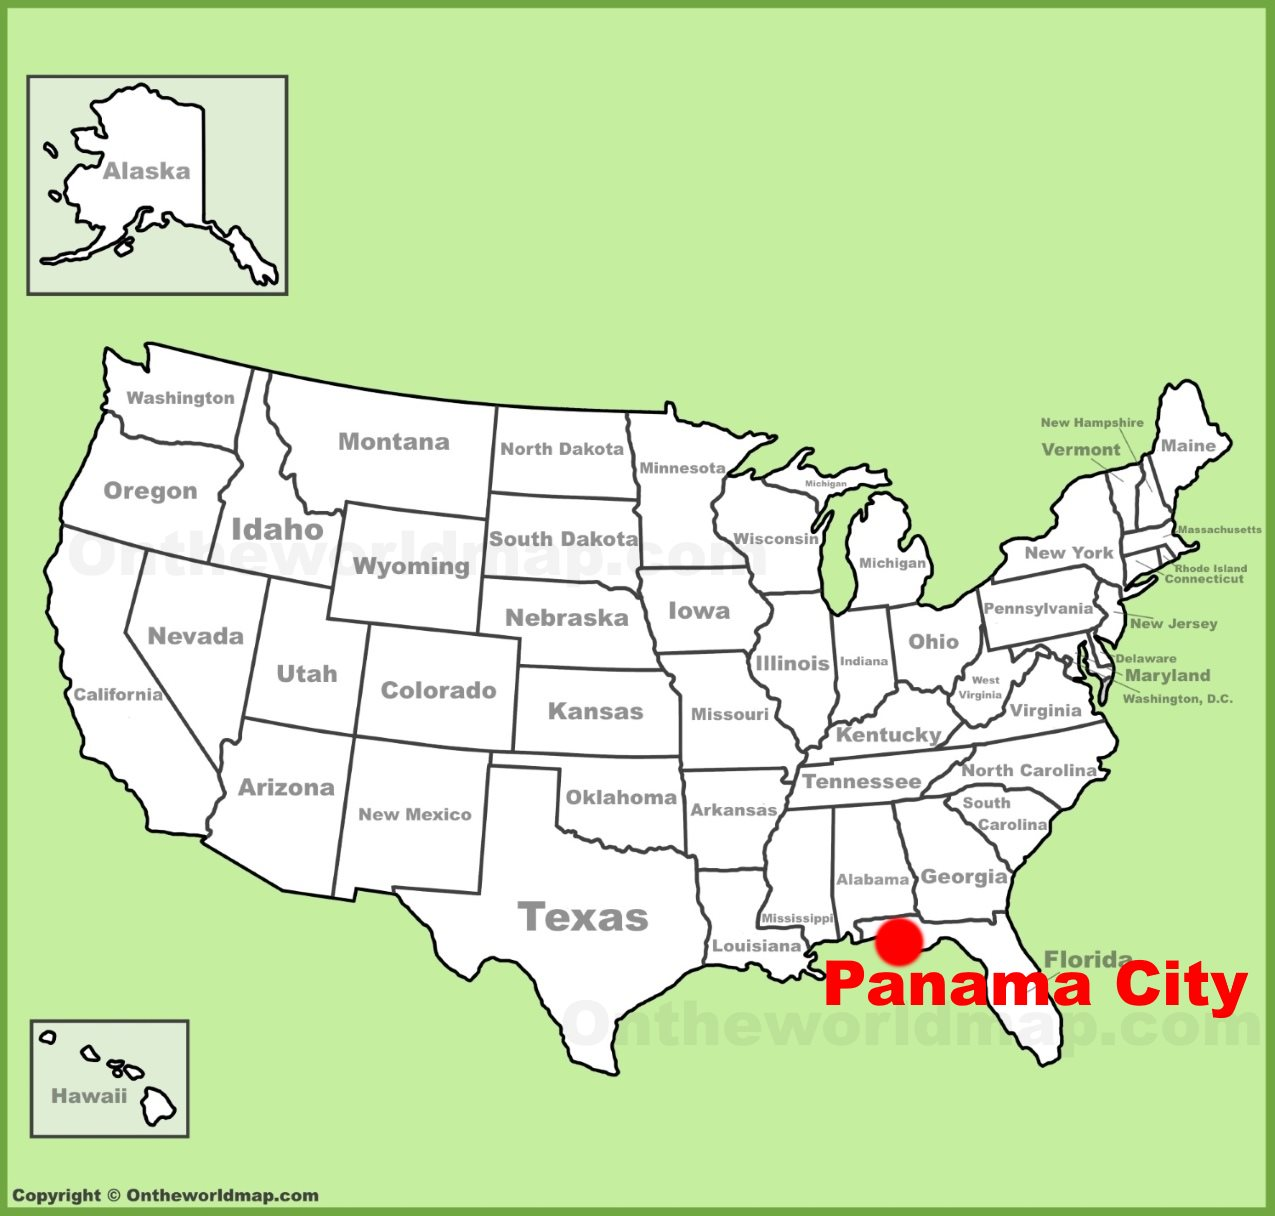 Panama City location on the U.S. Map